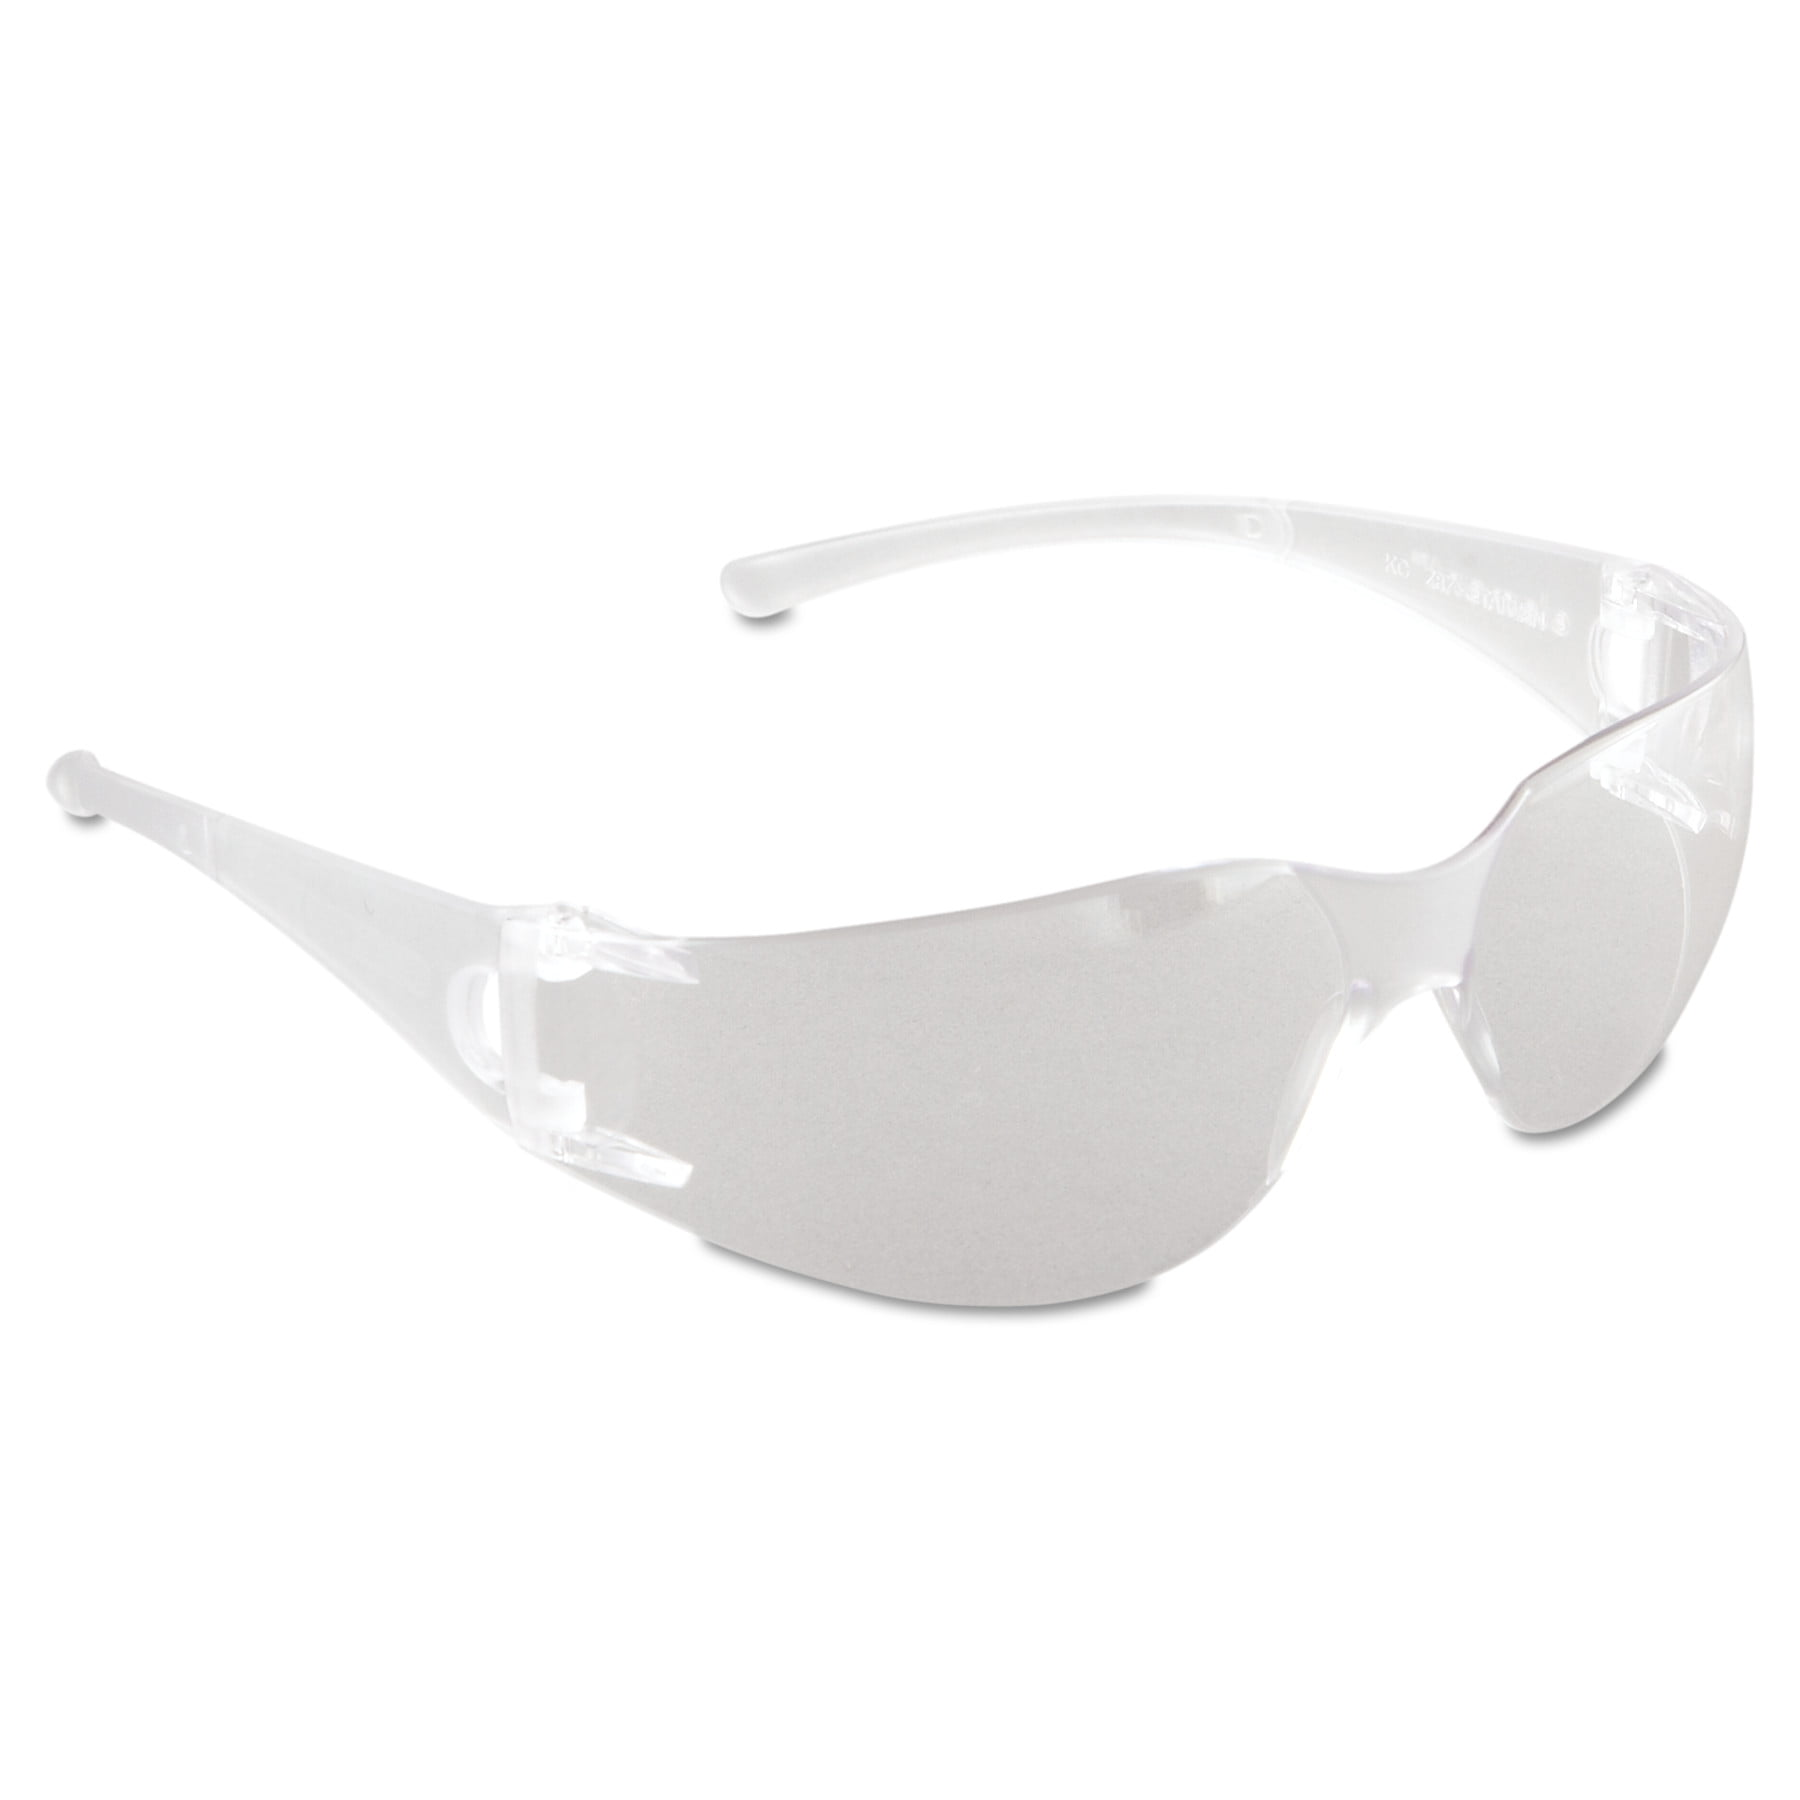 Jackson Safety* V10 Element Safety Glasses, Clear Frame, Clear Lens by Kimberly Clark